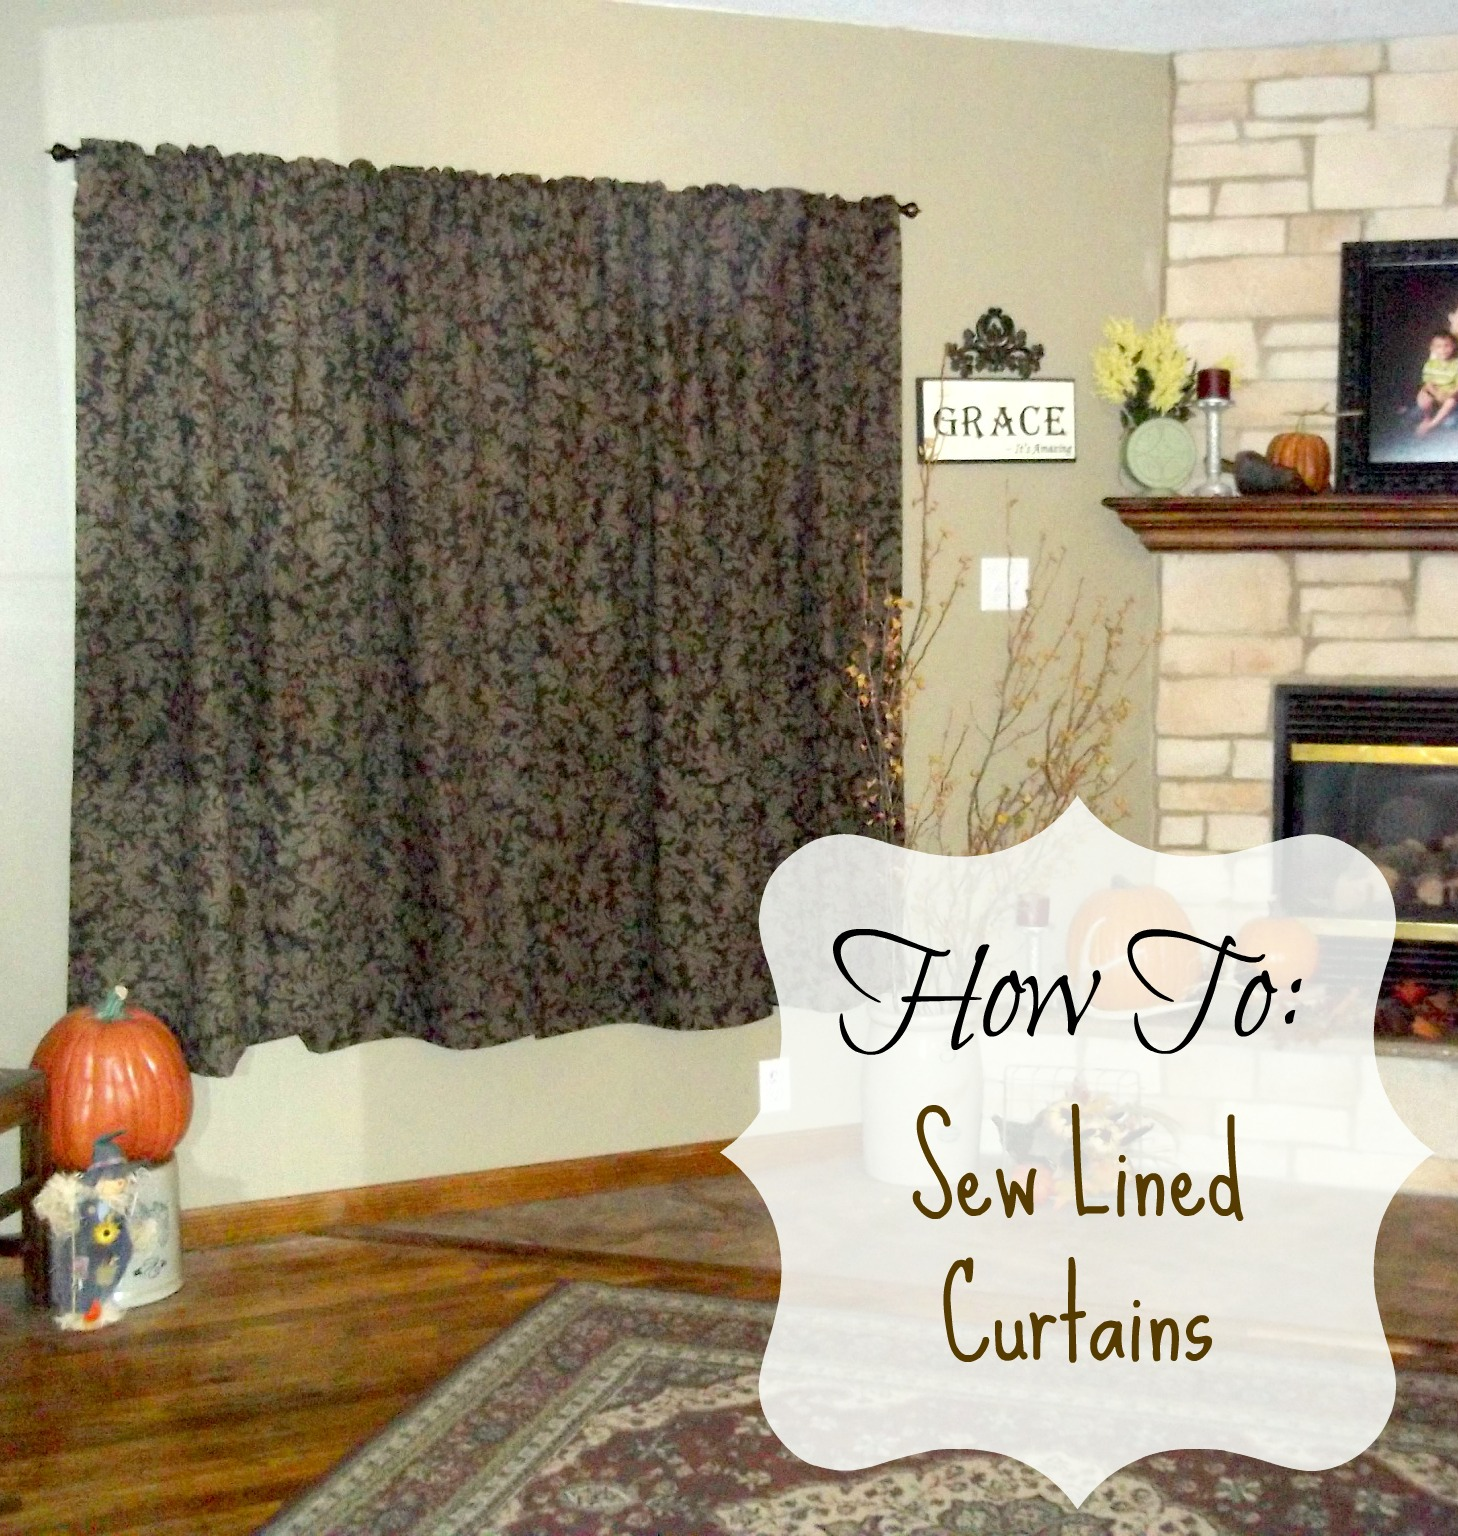 How to make rod pocket curtains - Sewing Lined Curtains